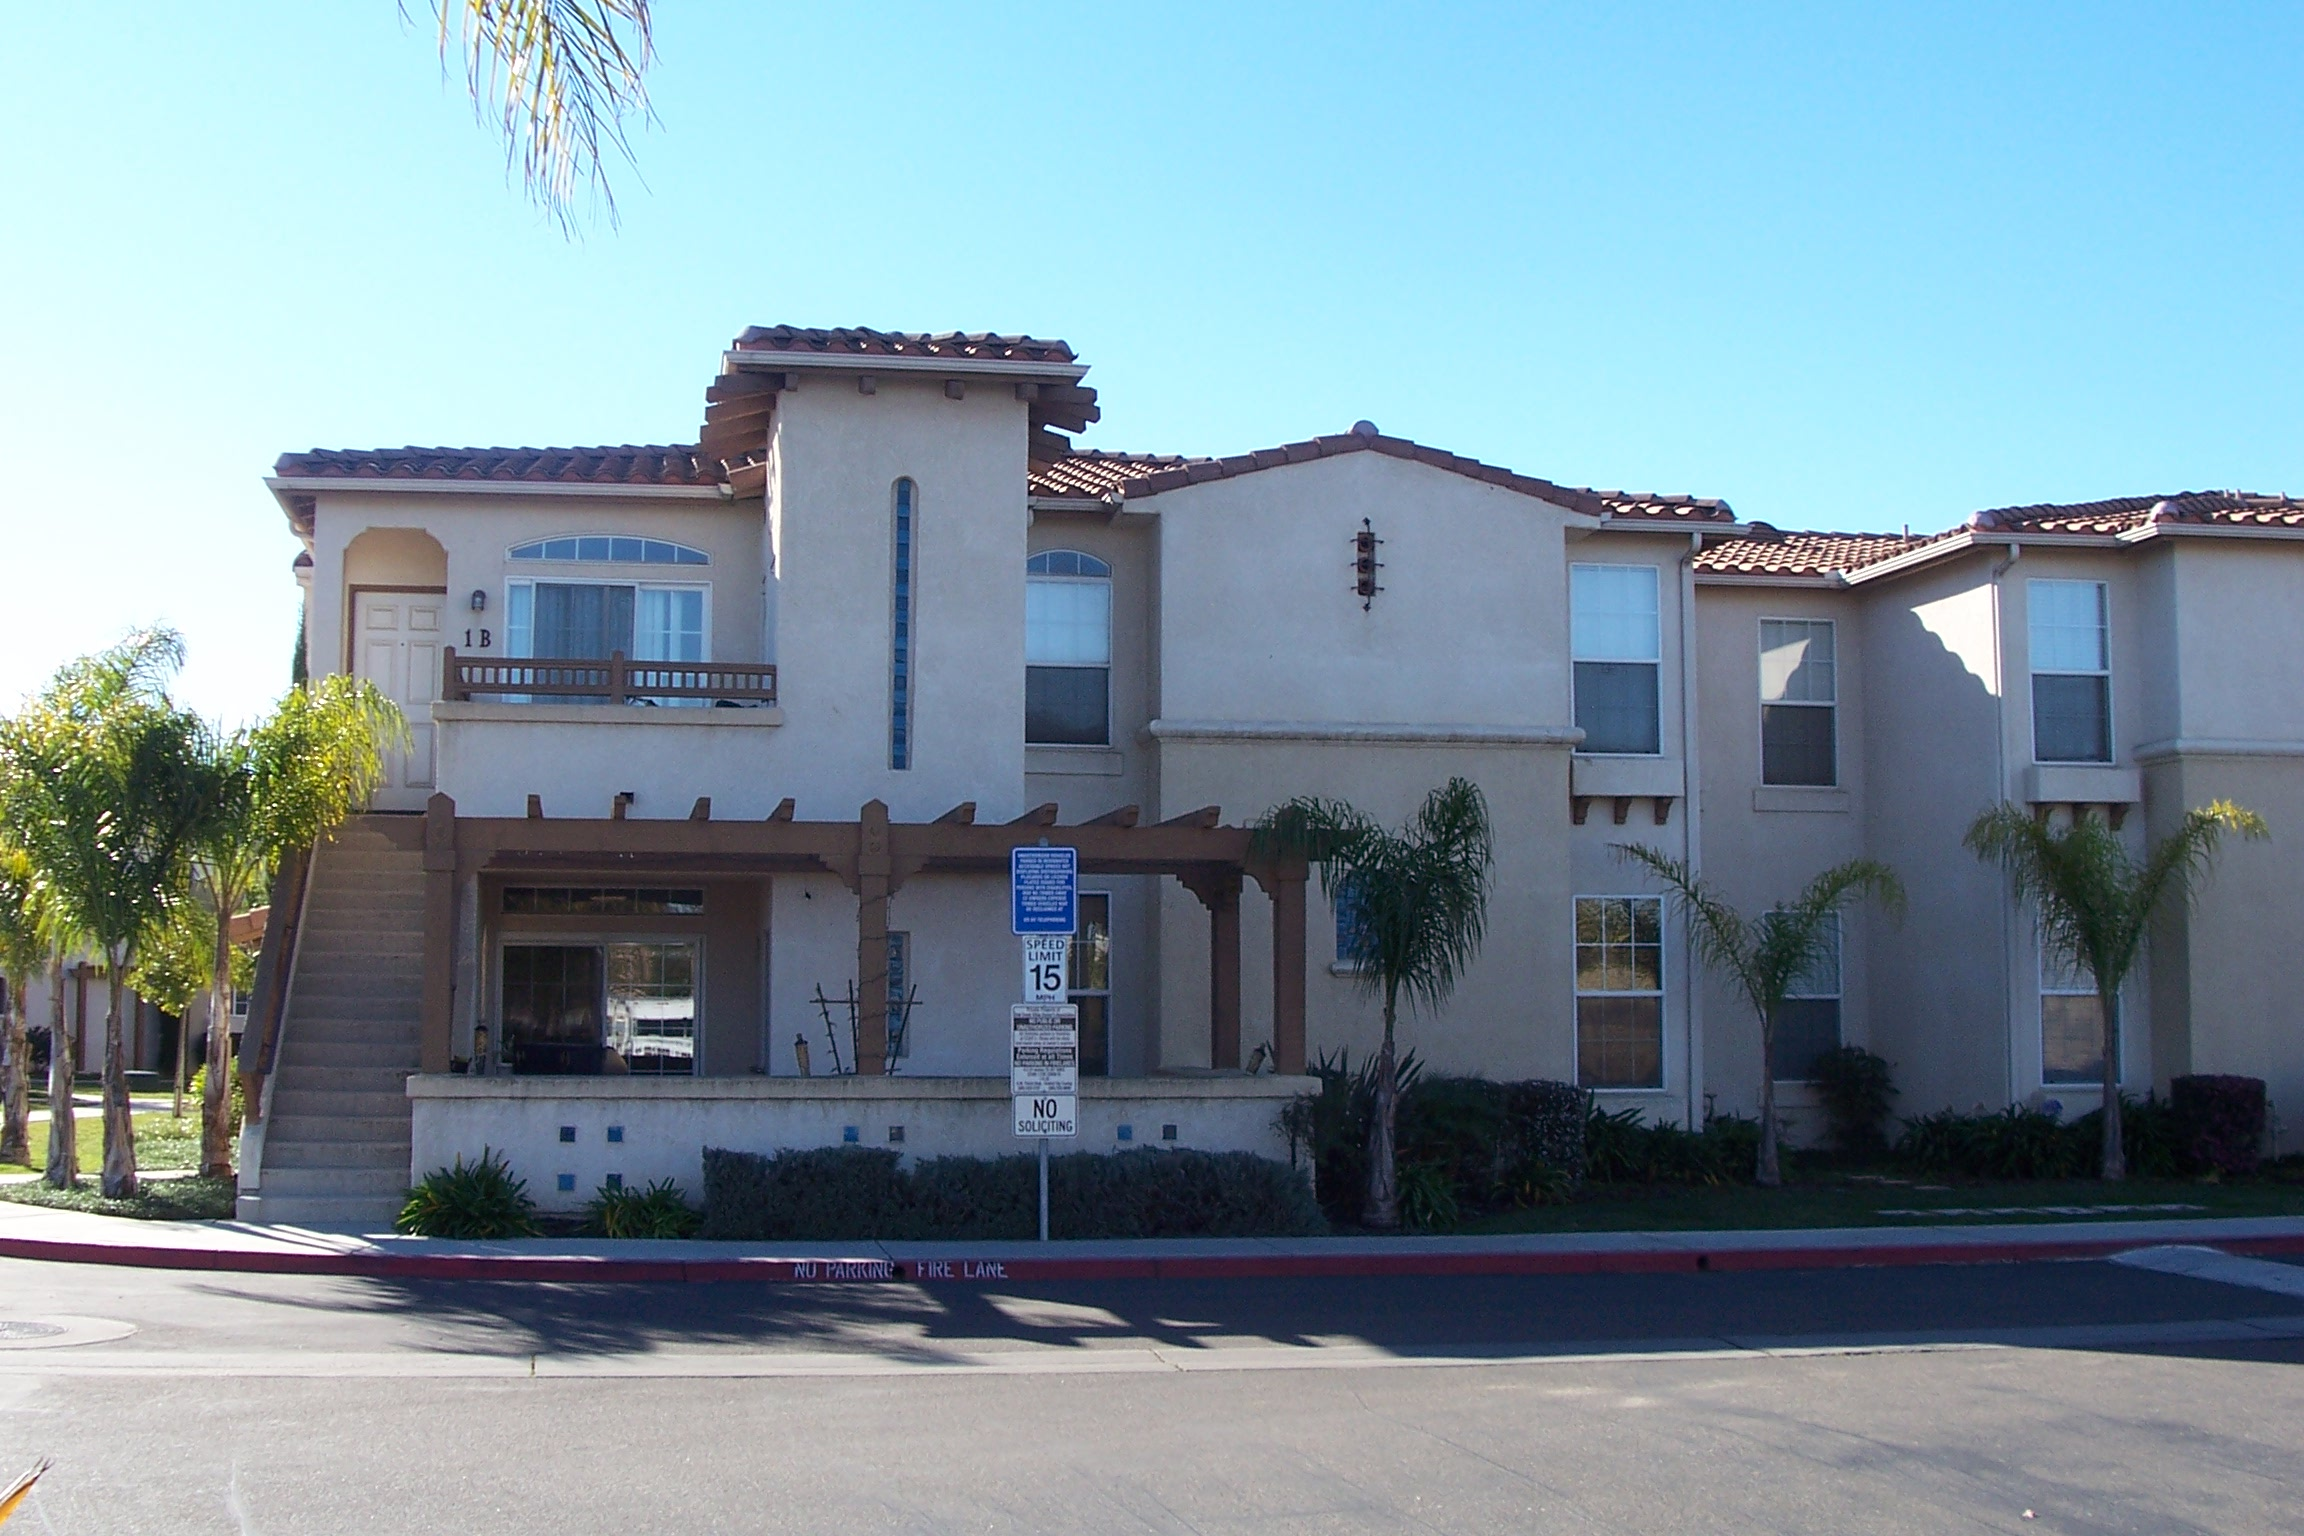 Mission Creek Village Condos vs. Oak Creek Villas (Santa Maria CA & Orcutt CA Condos)